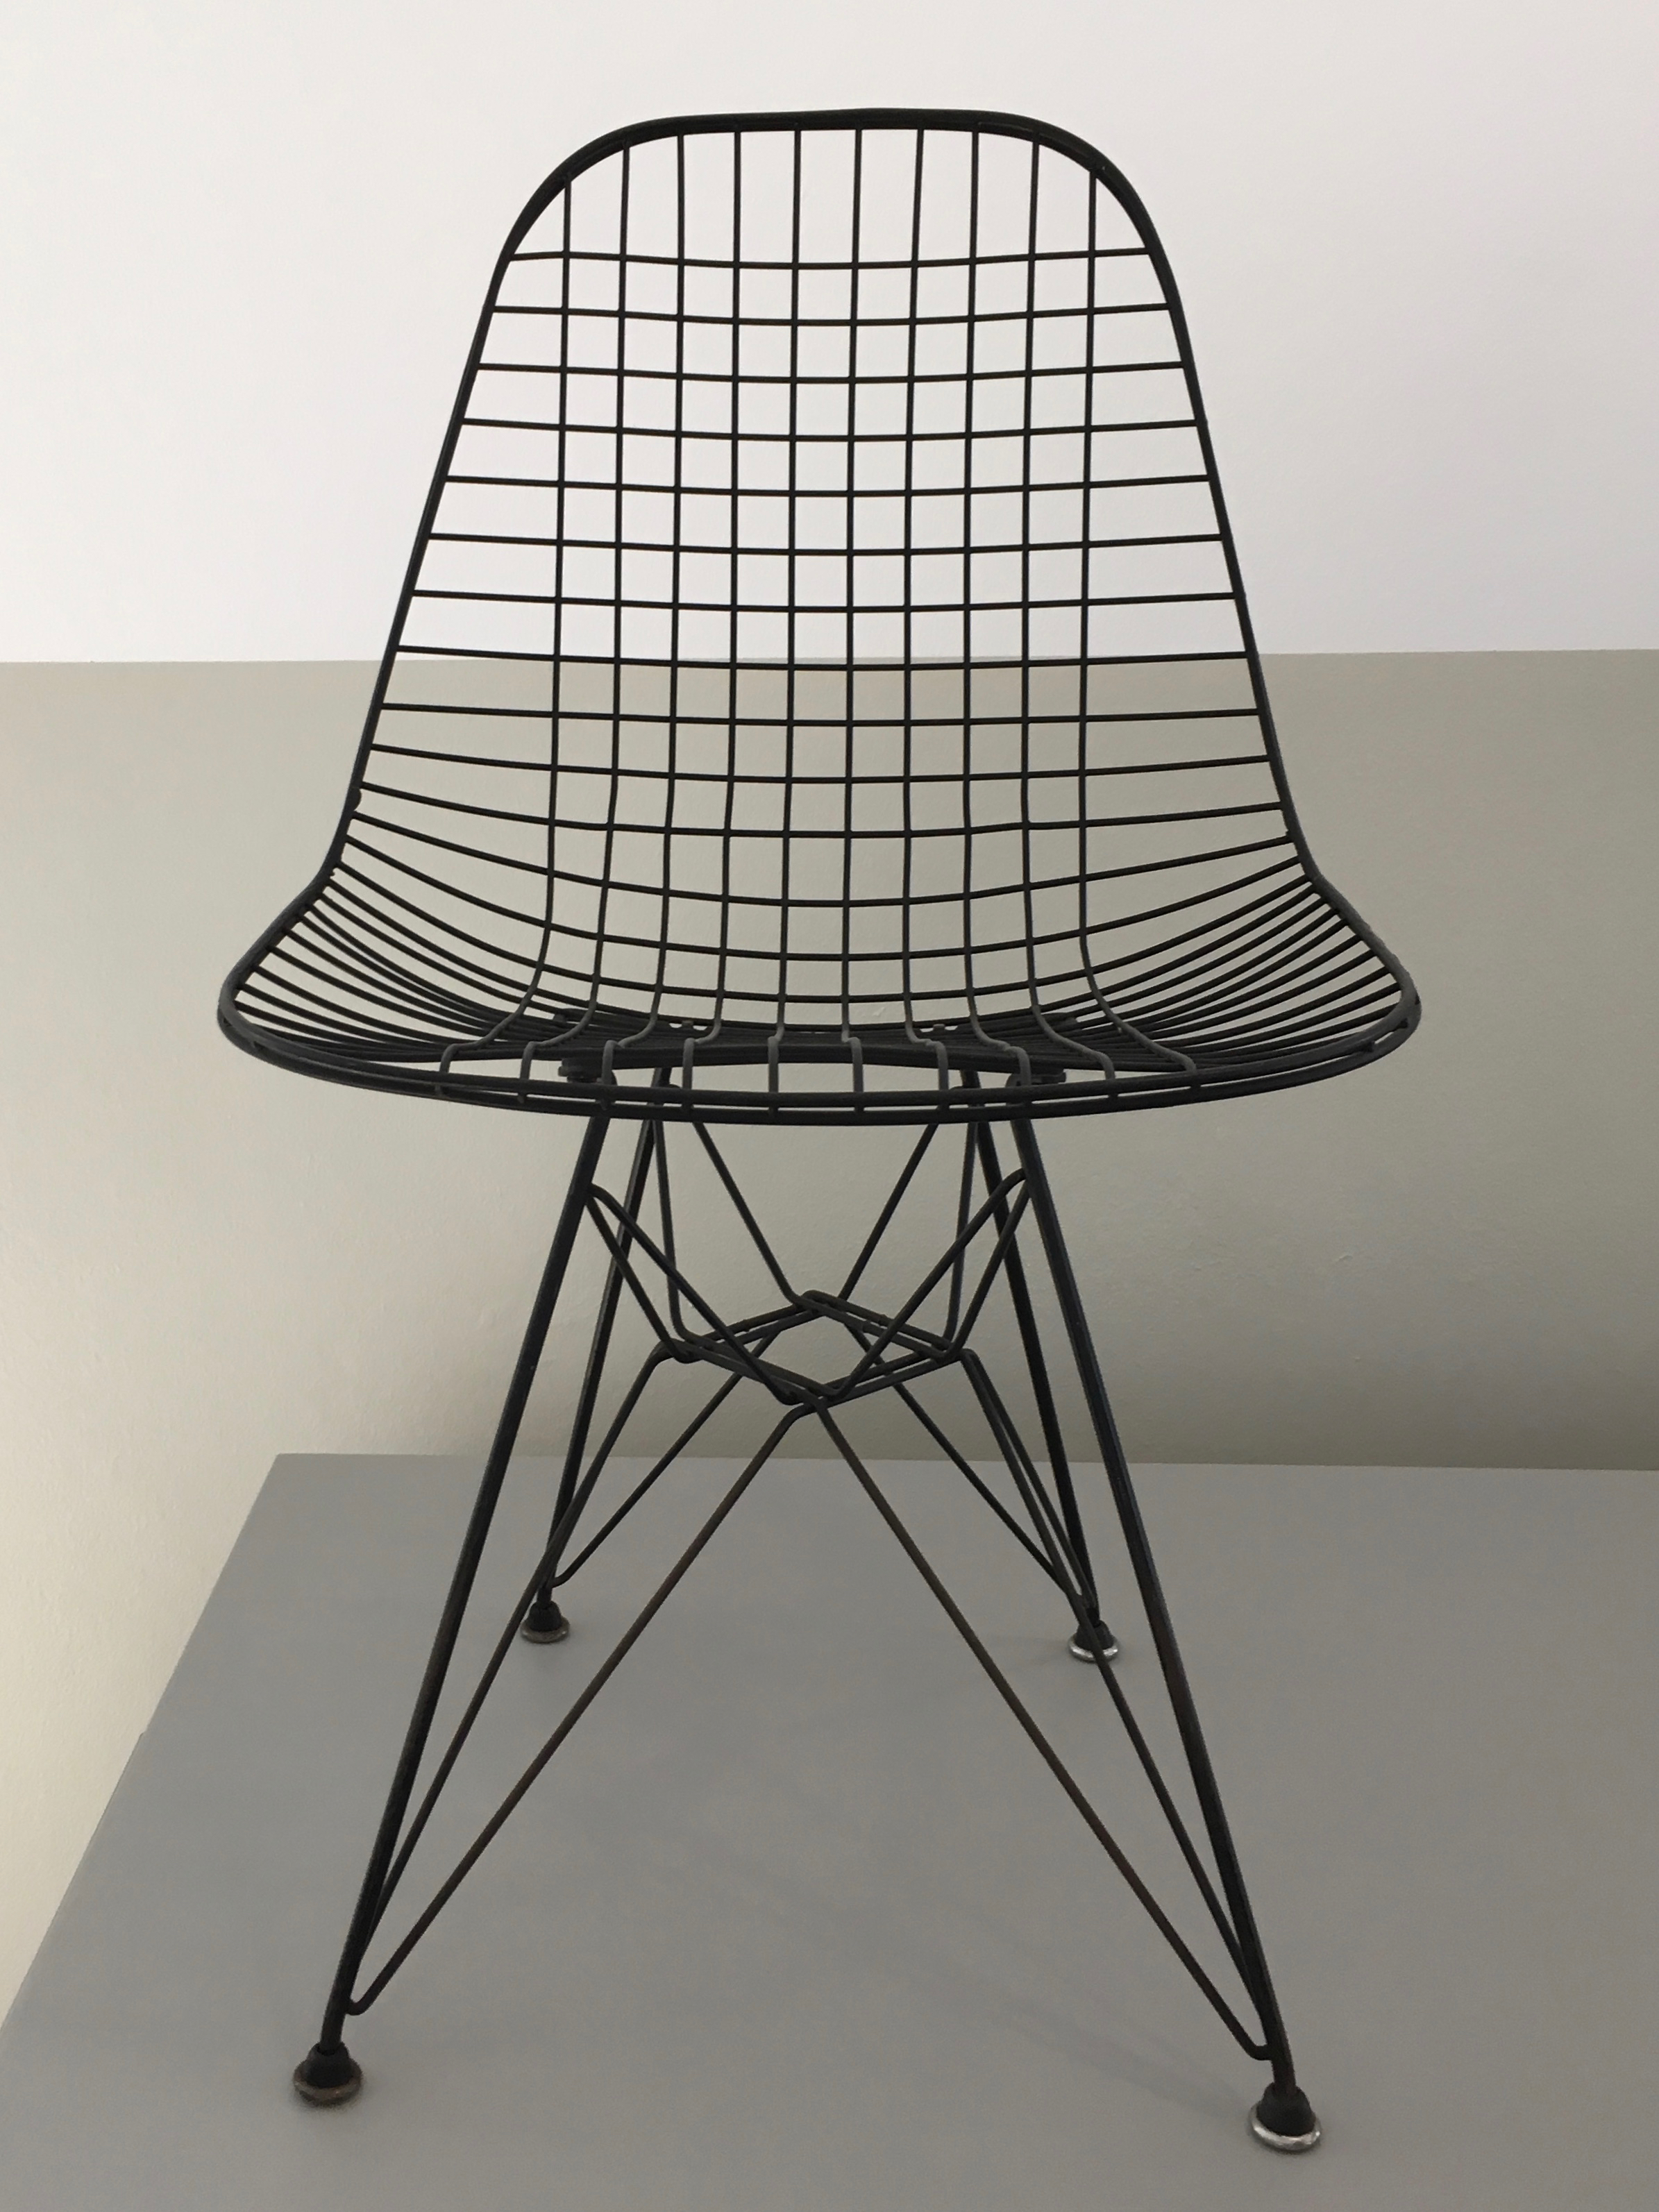 eames bucket chair bedroom 3d model free download file charles and ray 1951 boijmans v 1051 kn 02 jpg